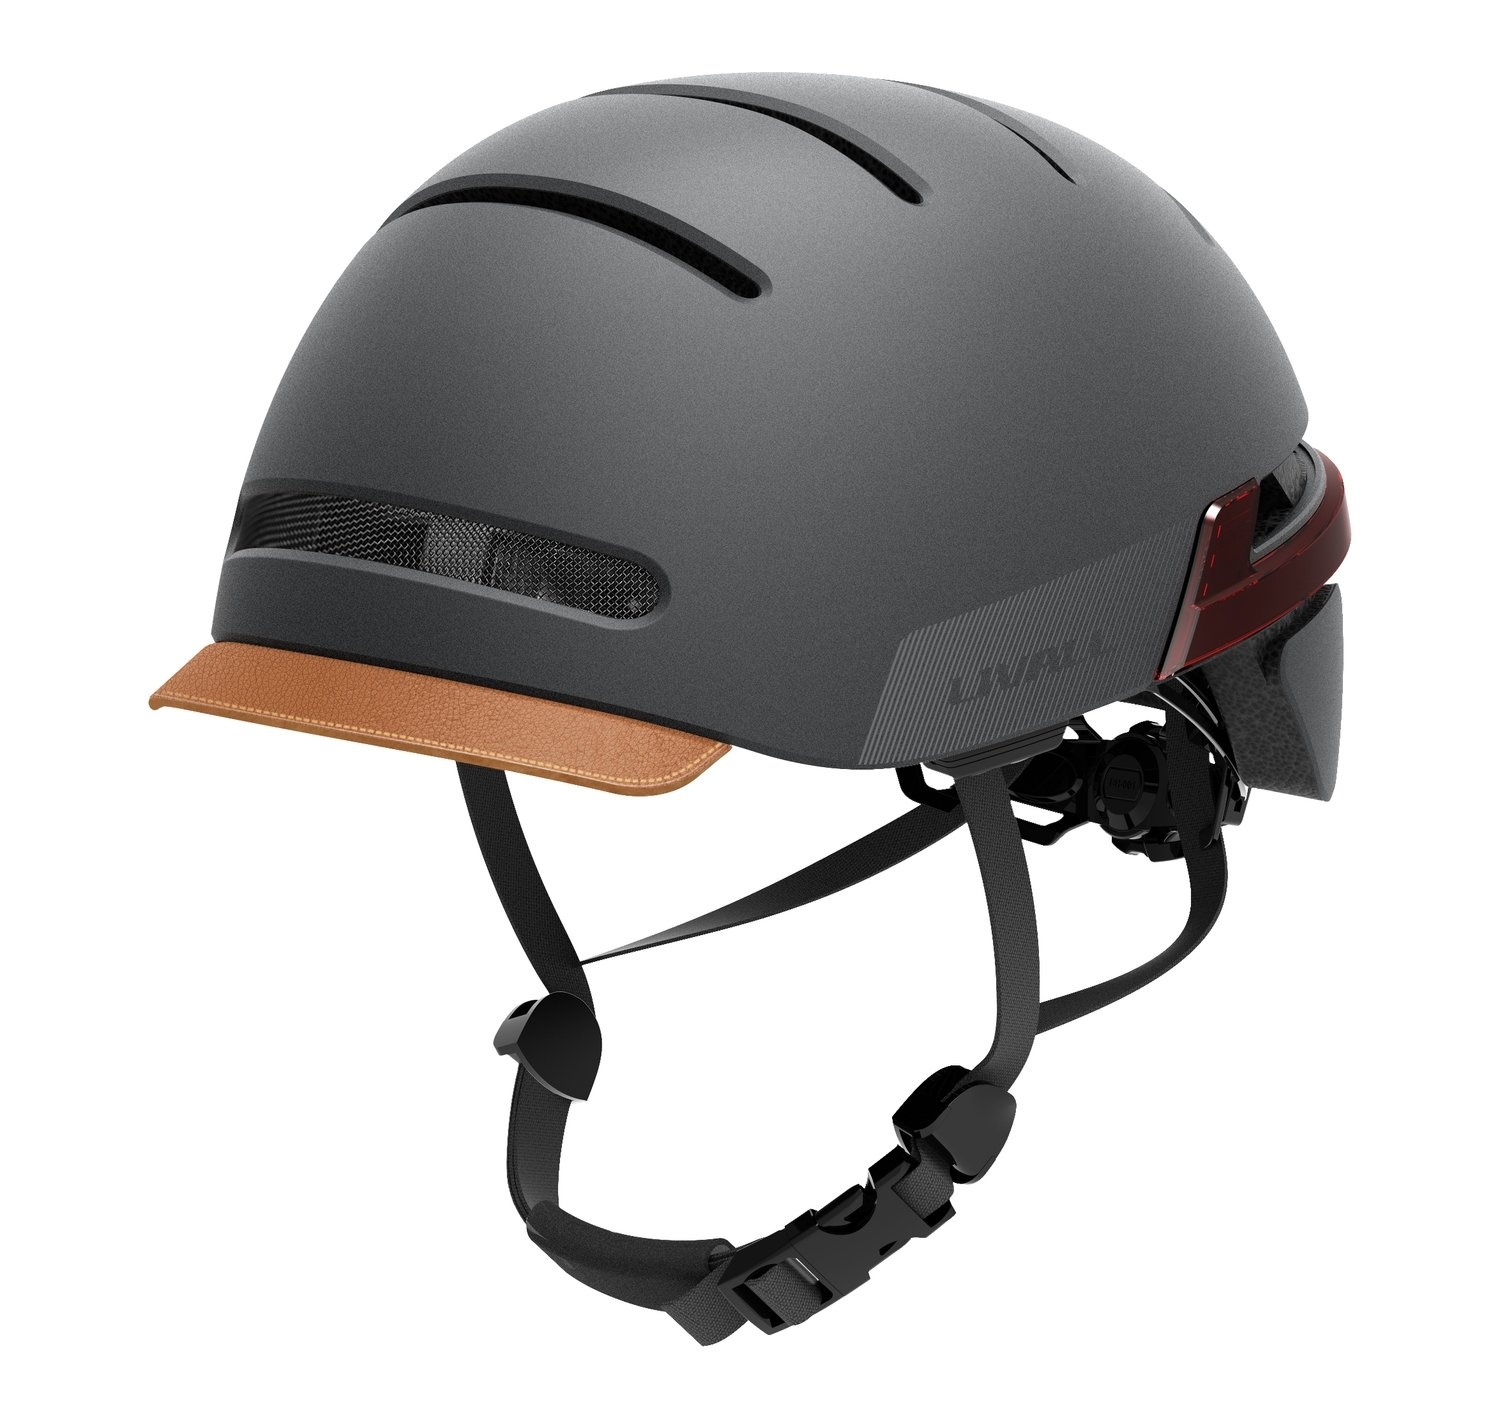 Livall BH51 helmet  (Demo unit back from a shop)